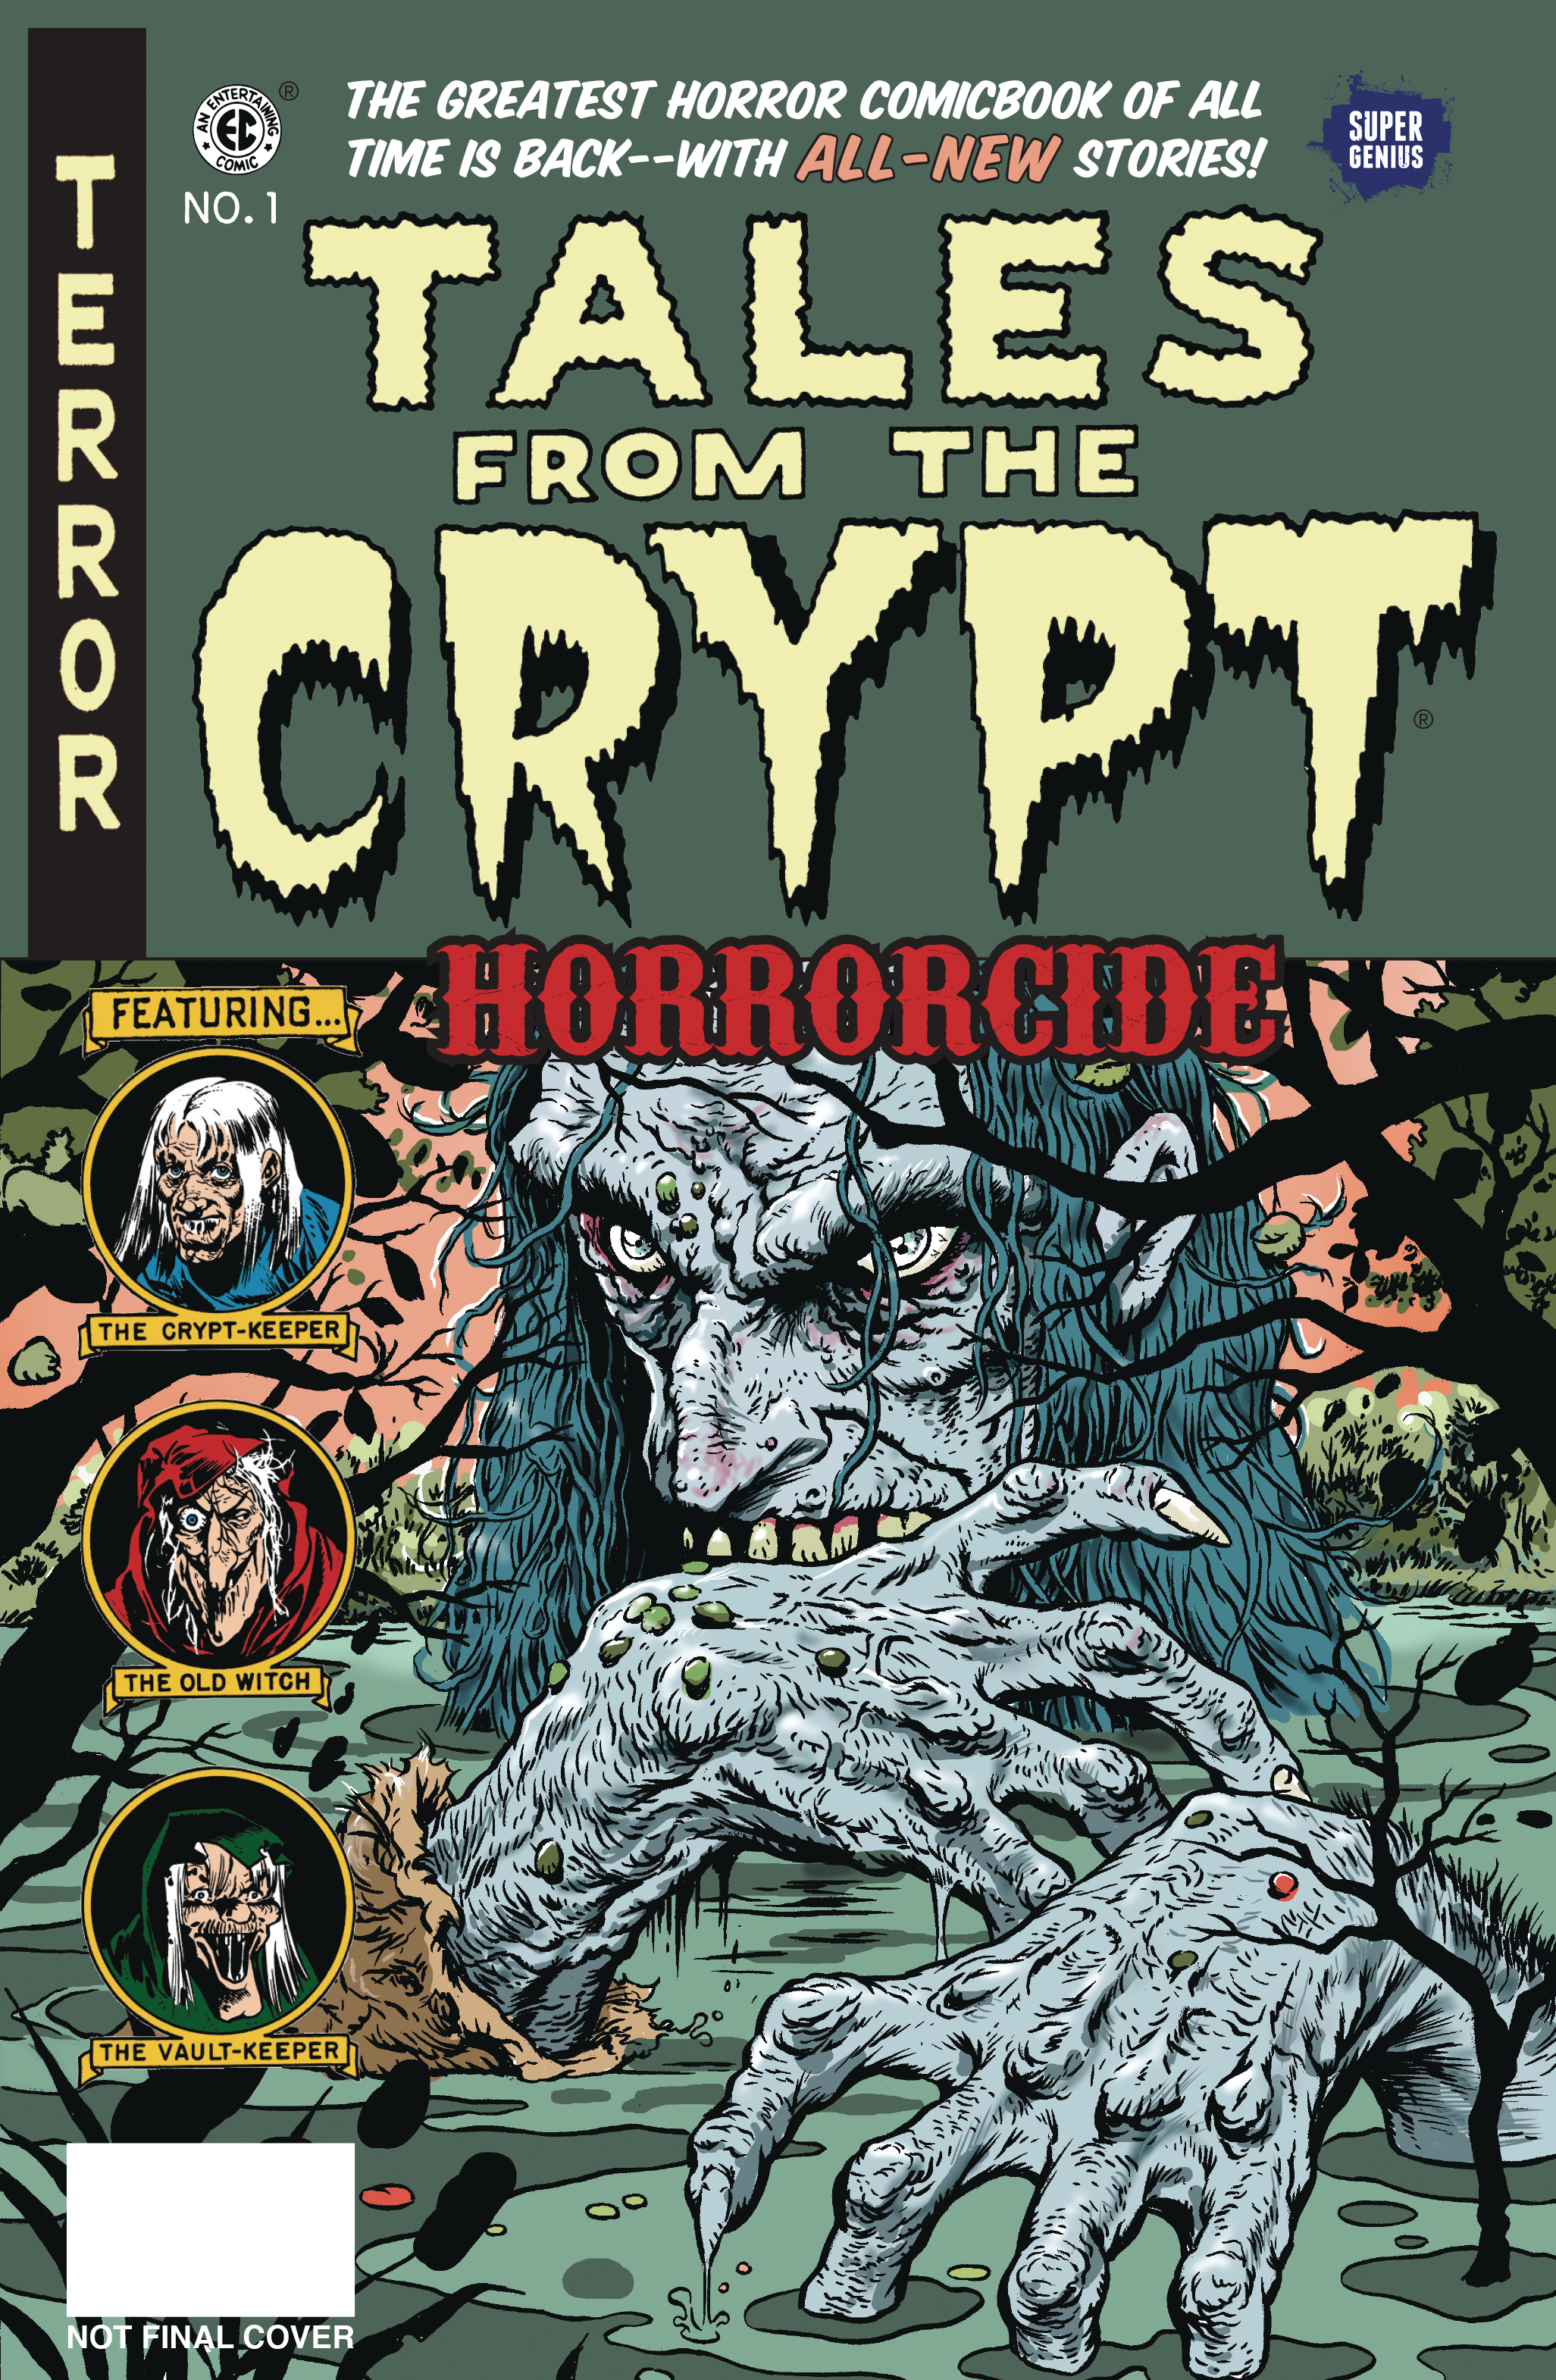 TALES FROM THE CRYPT HORRORCIDE #1